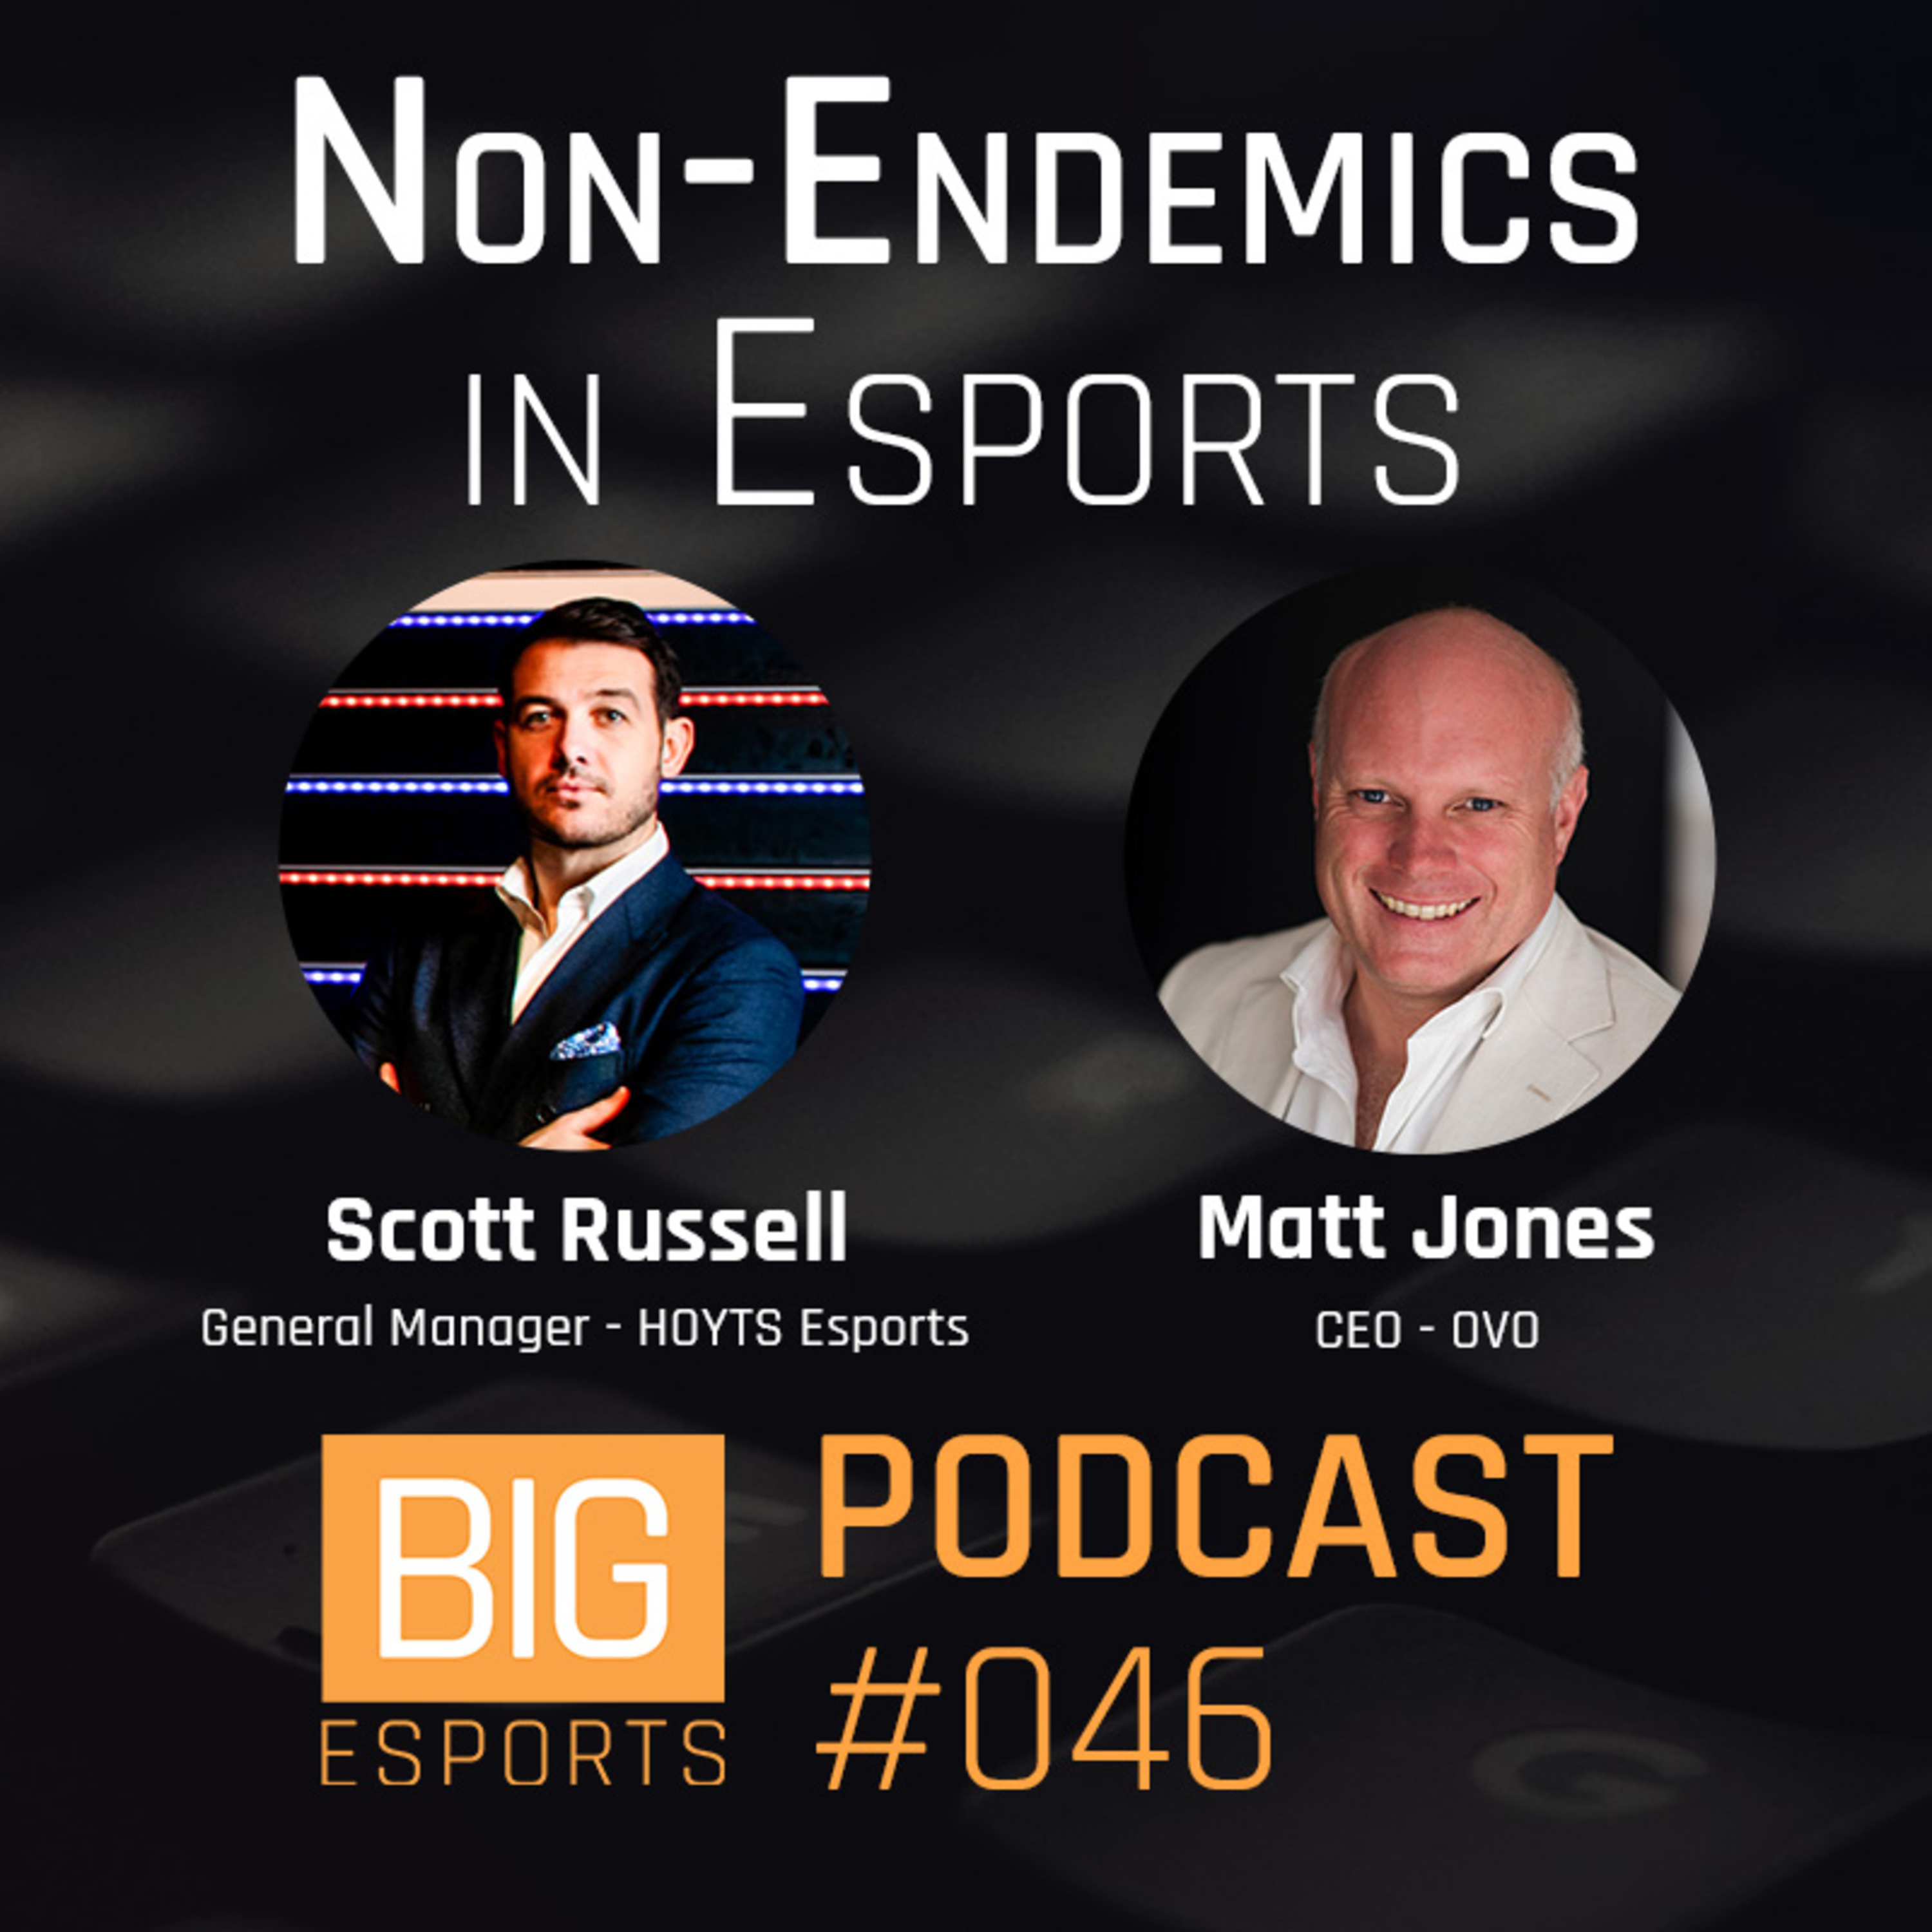 #046 - REVISIT Non-Endemics in Esports